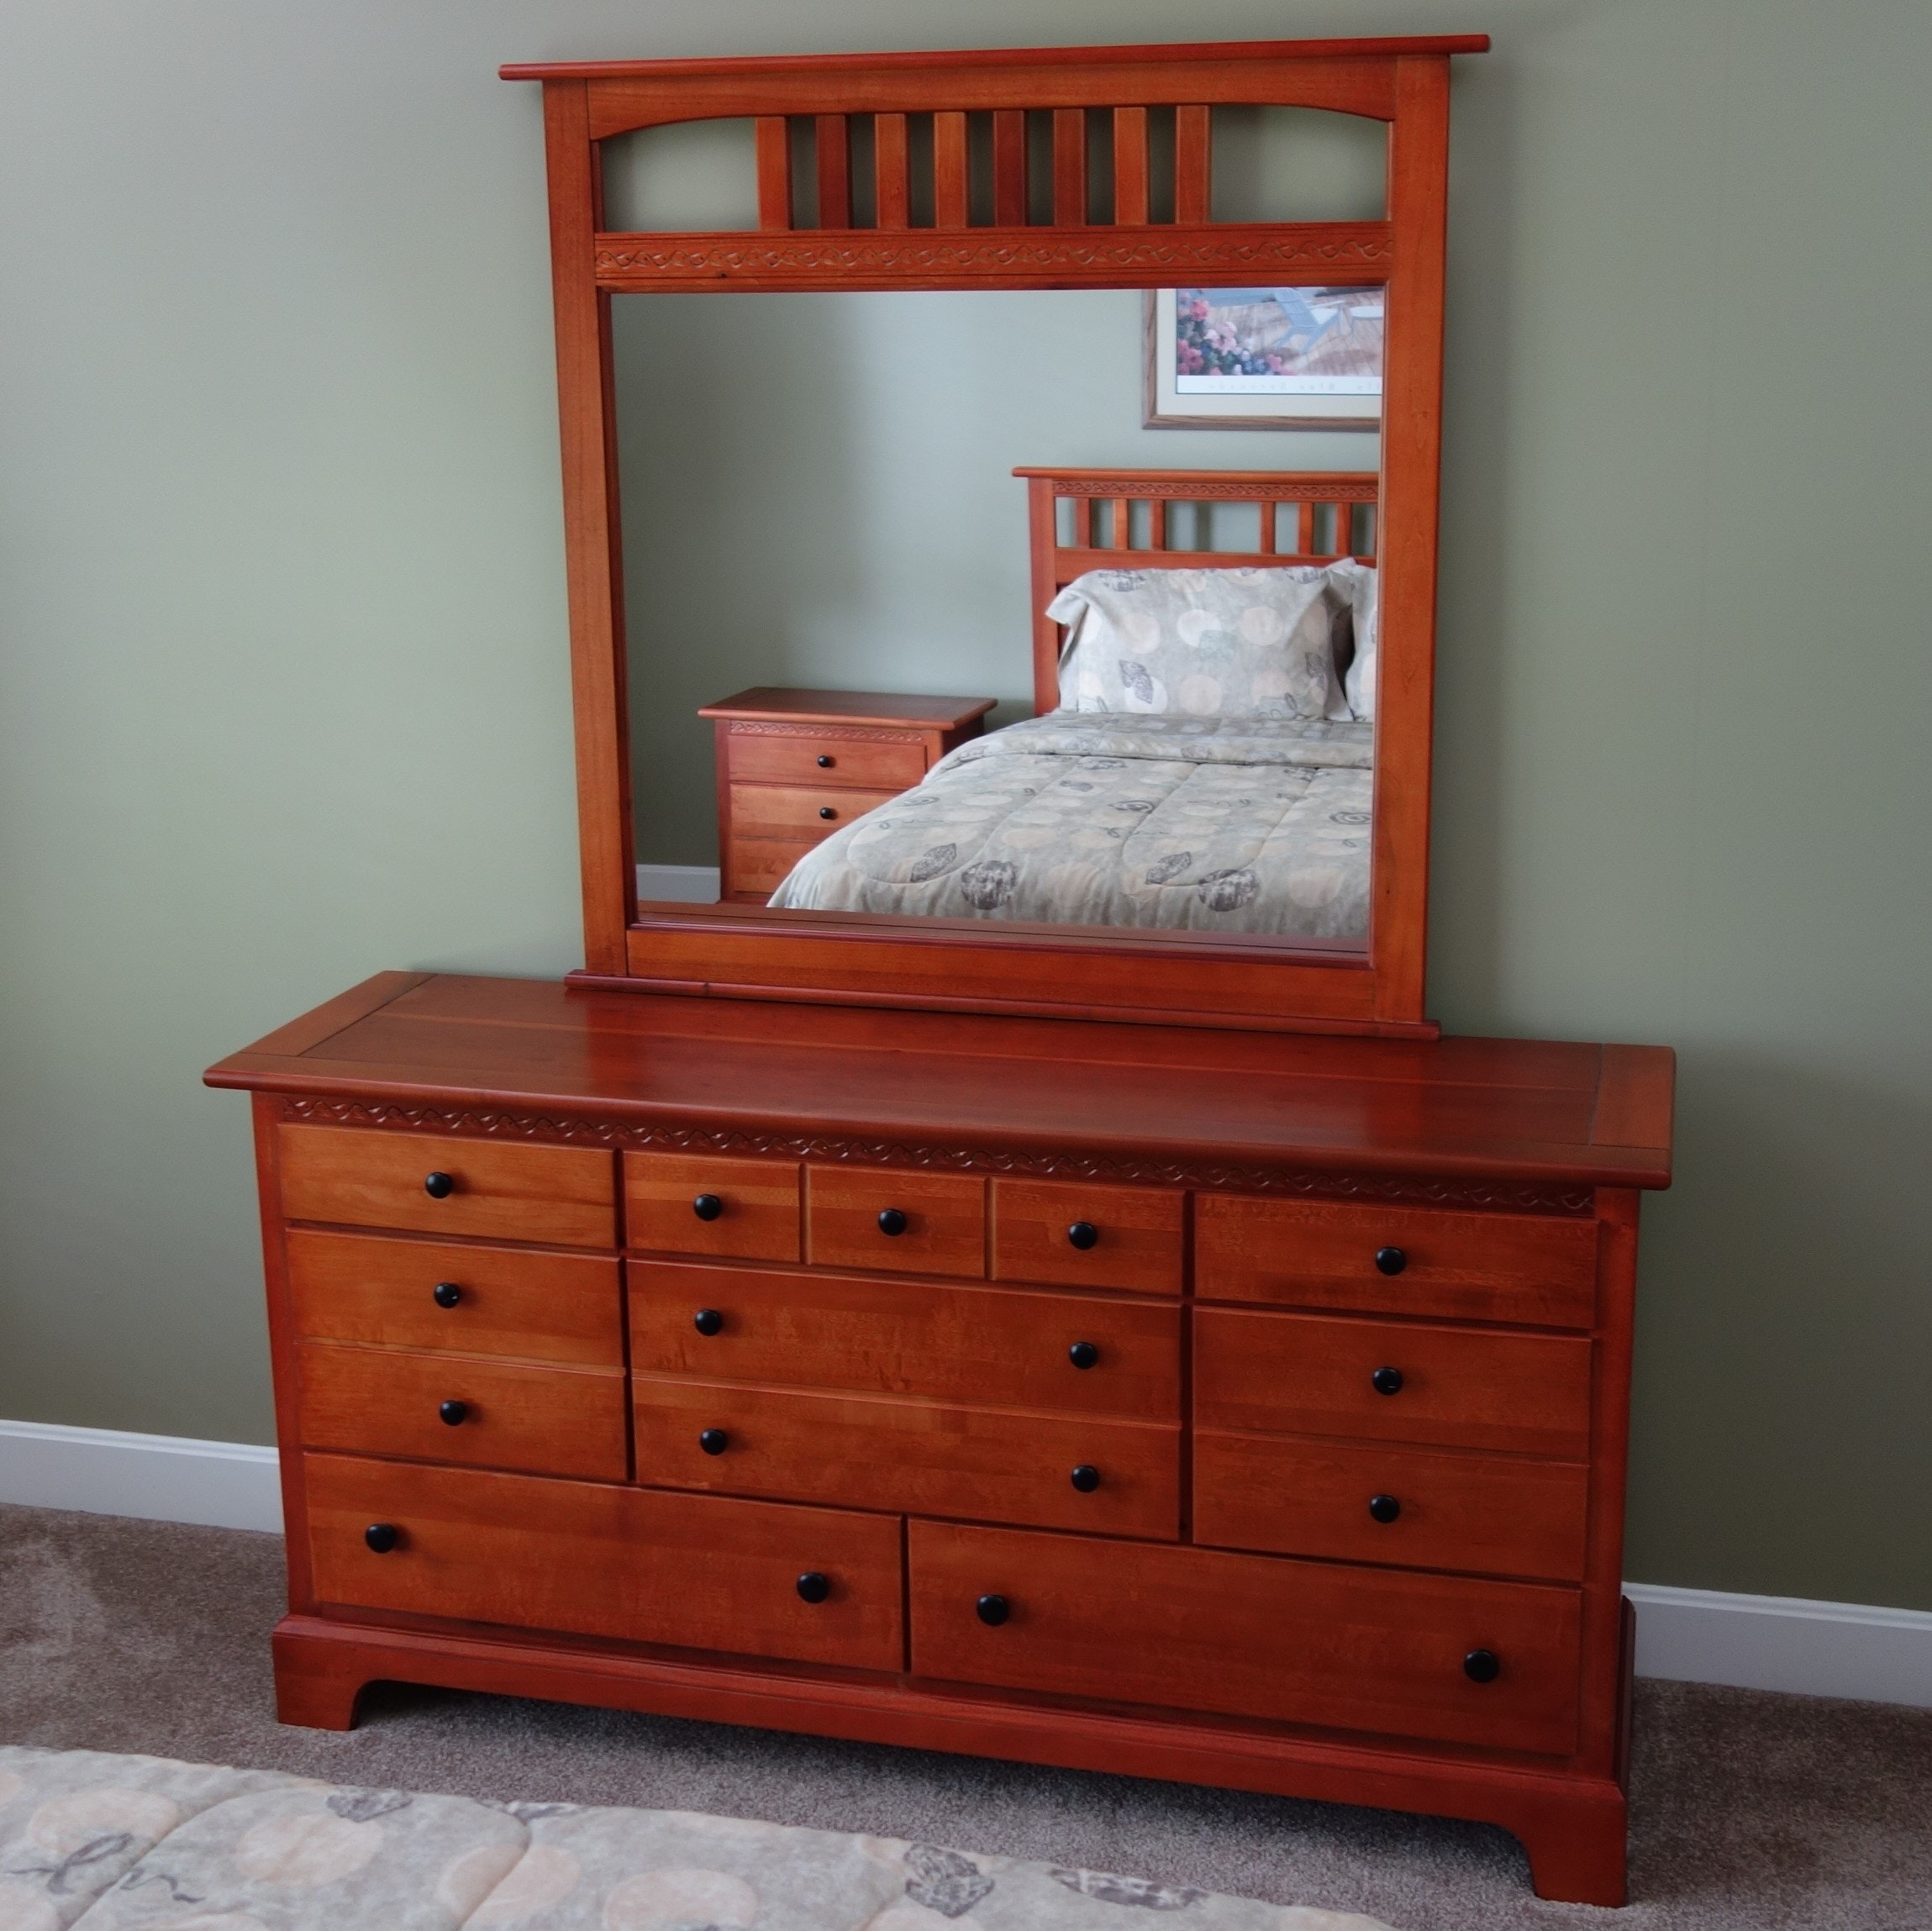 Contemporary Arts and Crafts Style Three-Piece Queen Bedroom Set